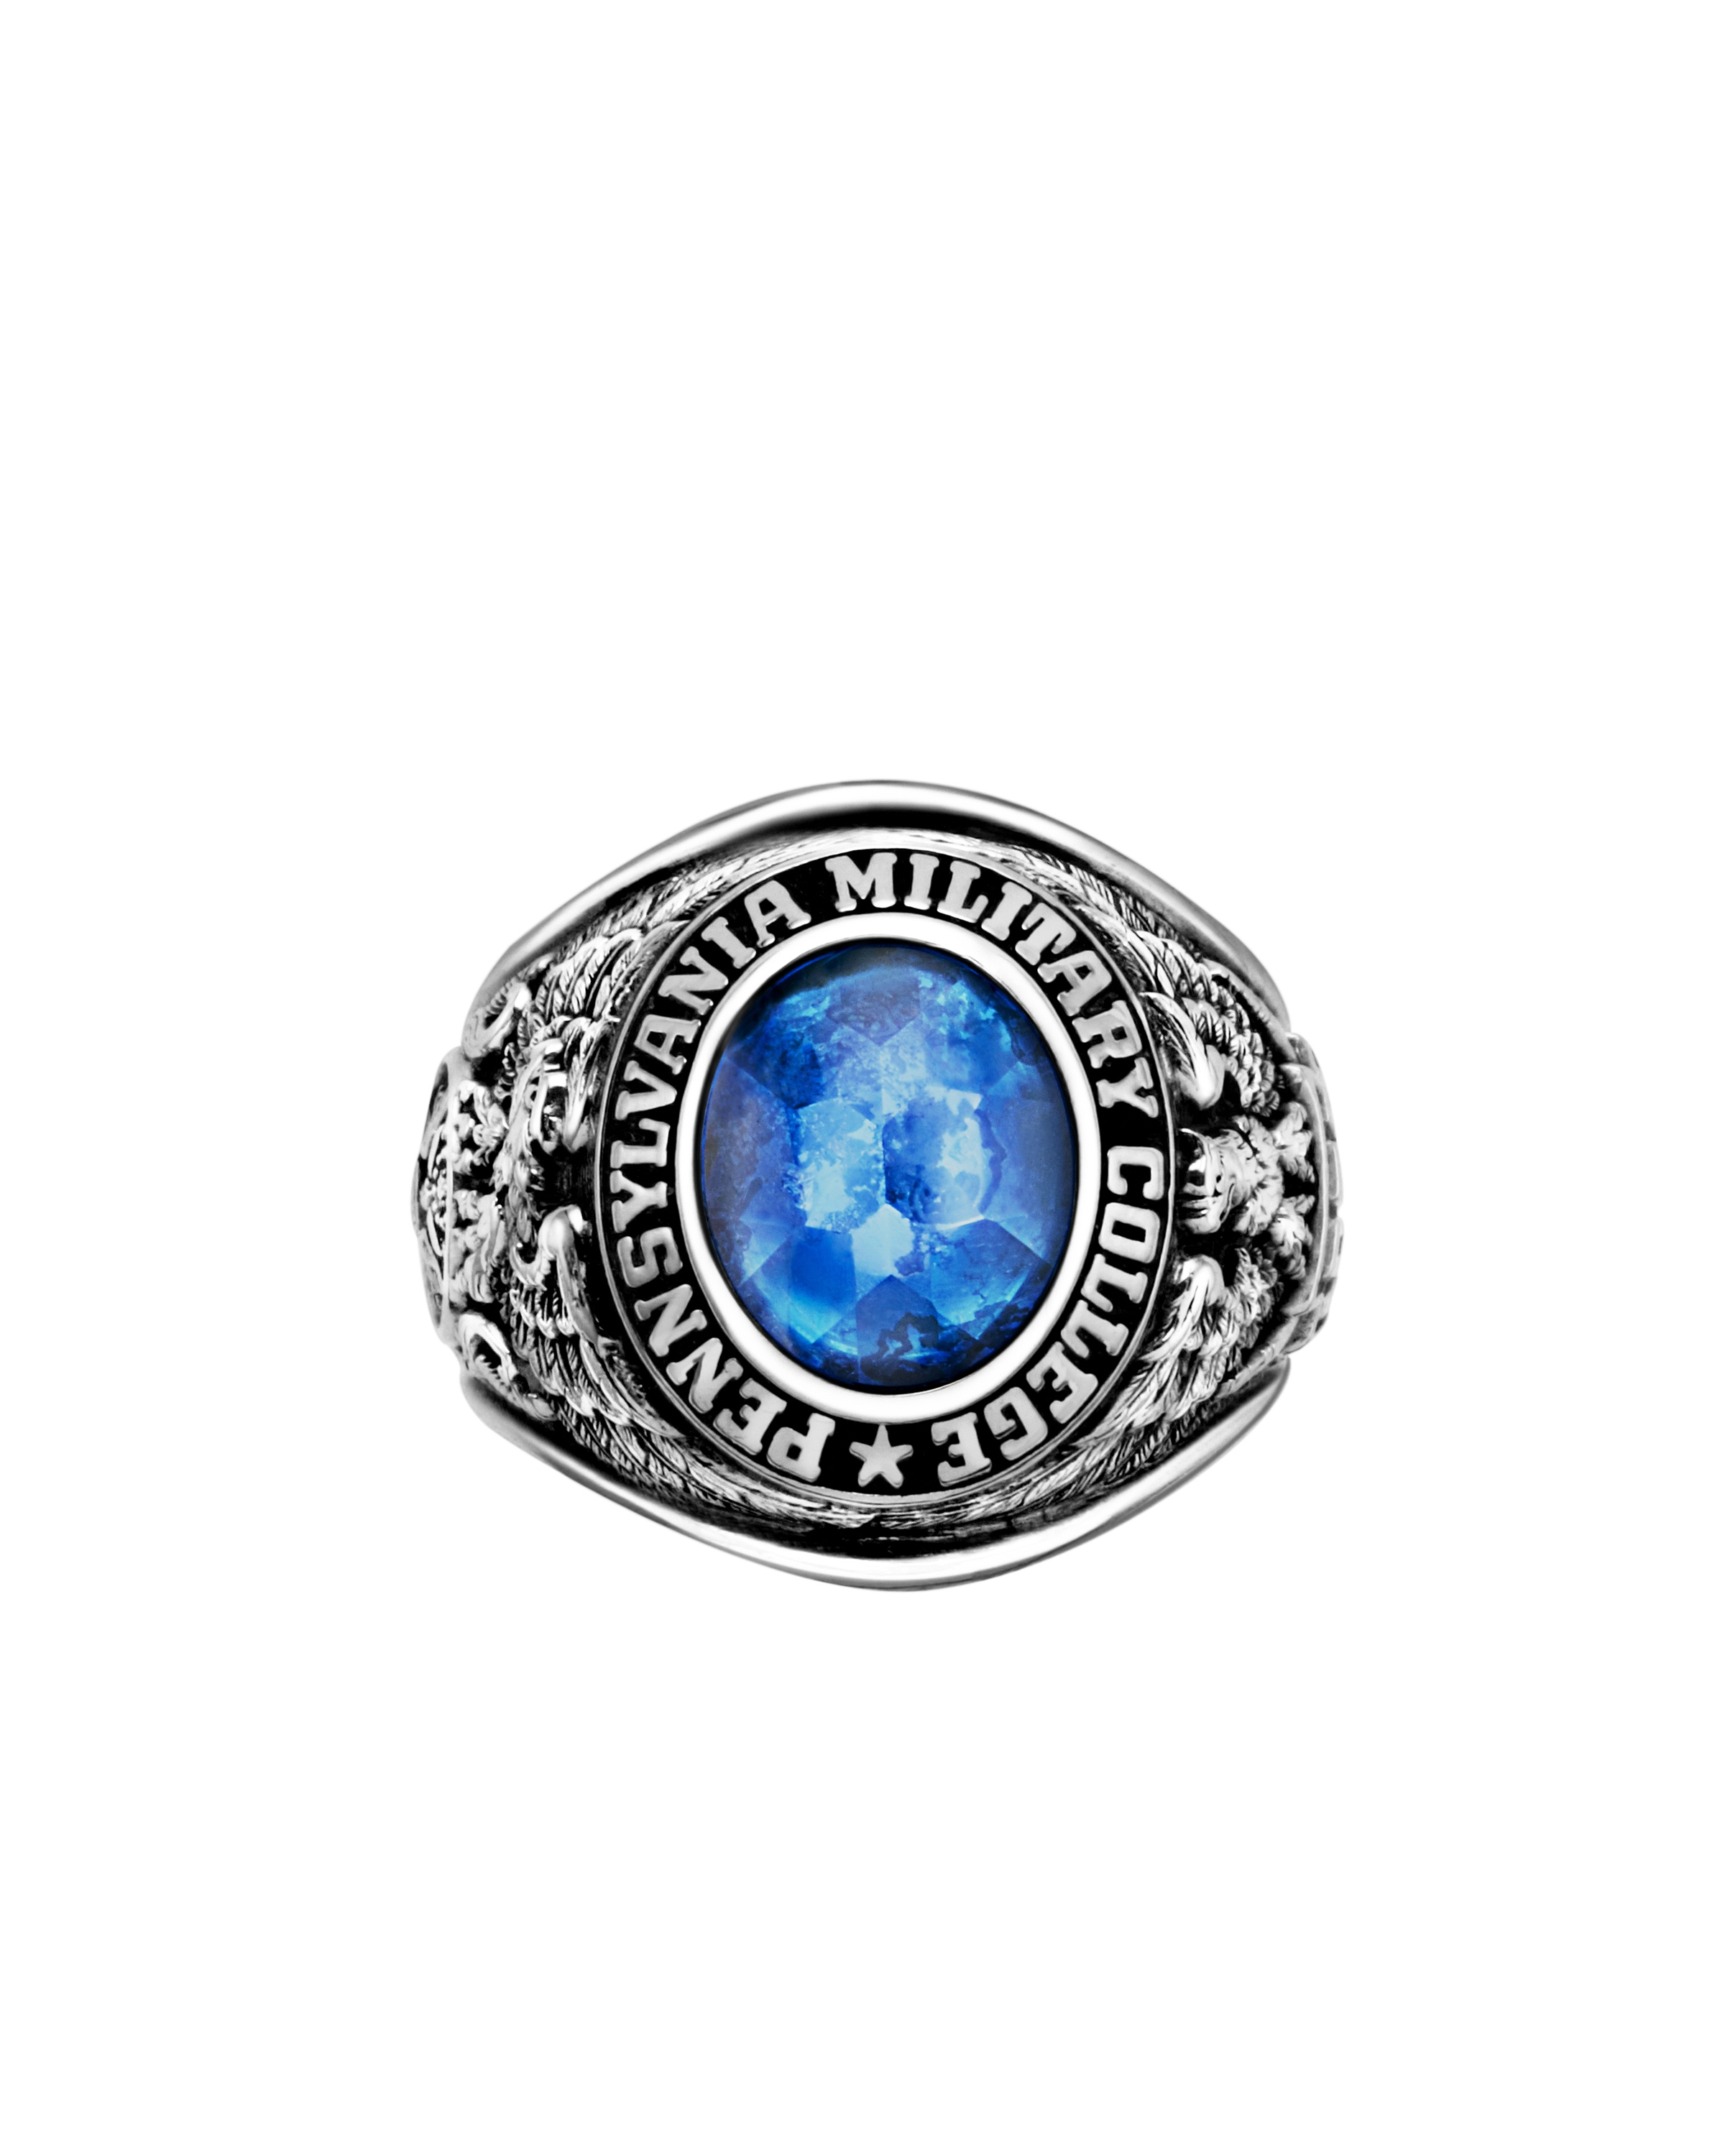 symbolism pennsylvania class profile the ring rings military of college